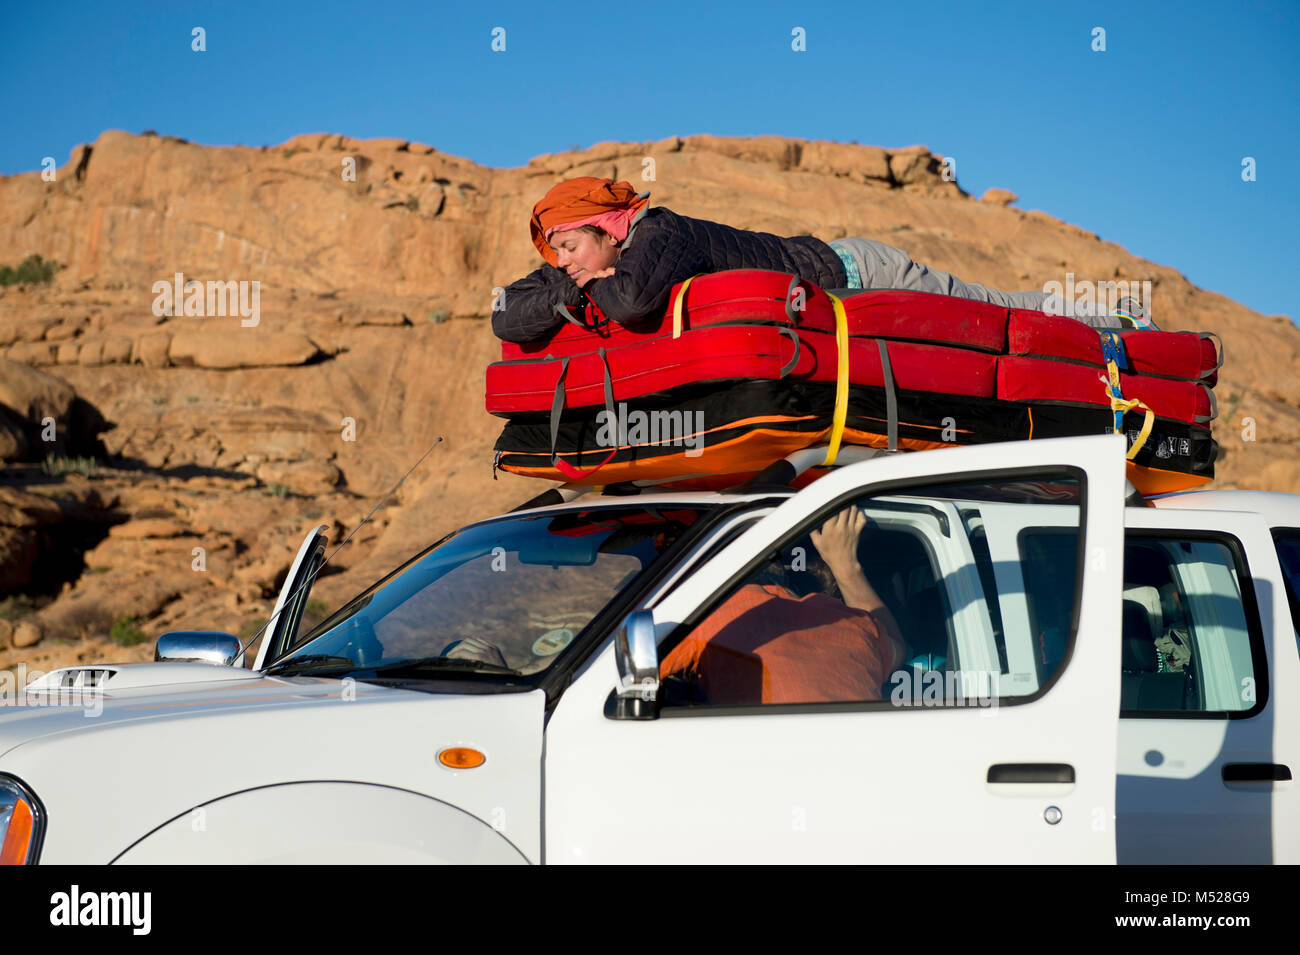 woman sleeping on crash pad on top of car during bouldering stock photo 175227593 alamy. Black Bedroom Furniture Sets. Home Design Ideas